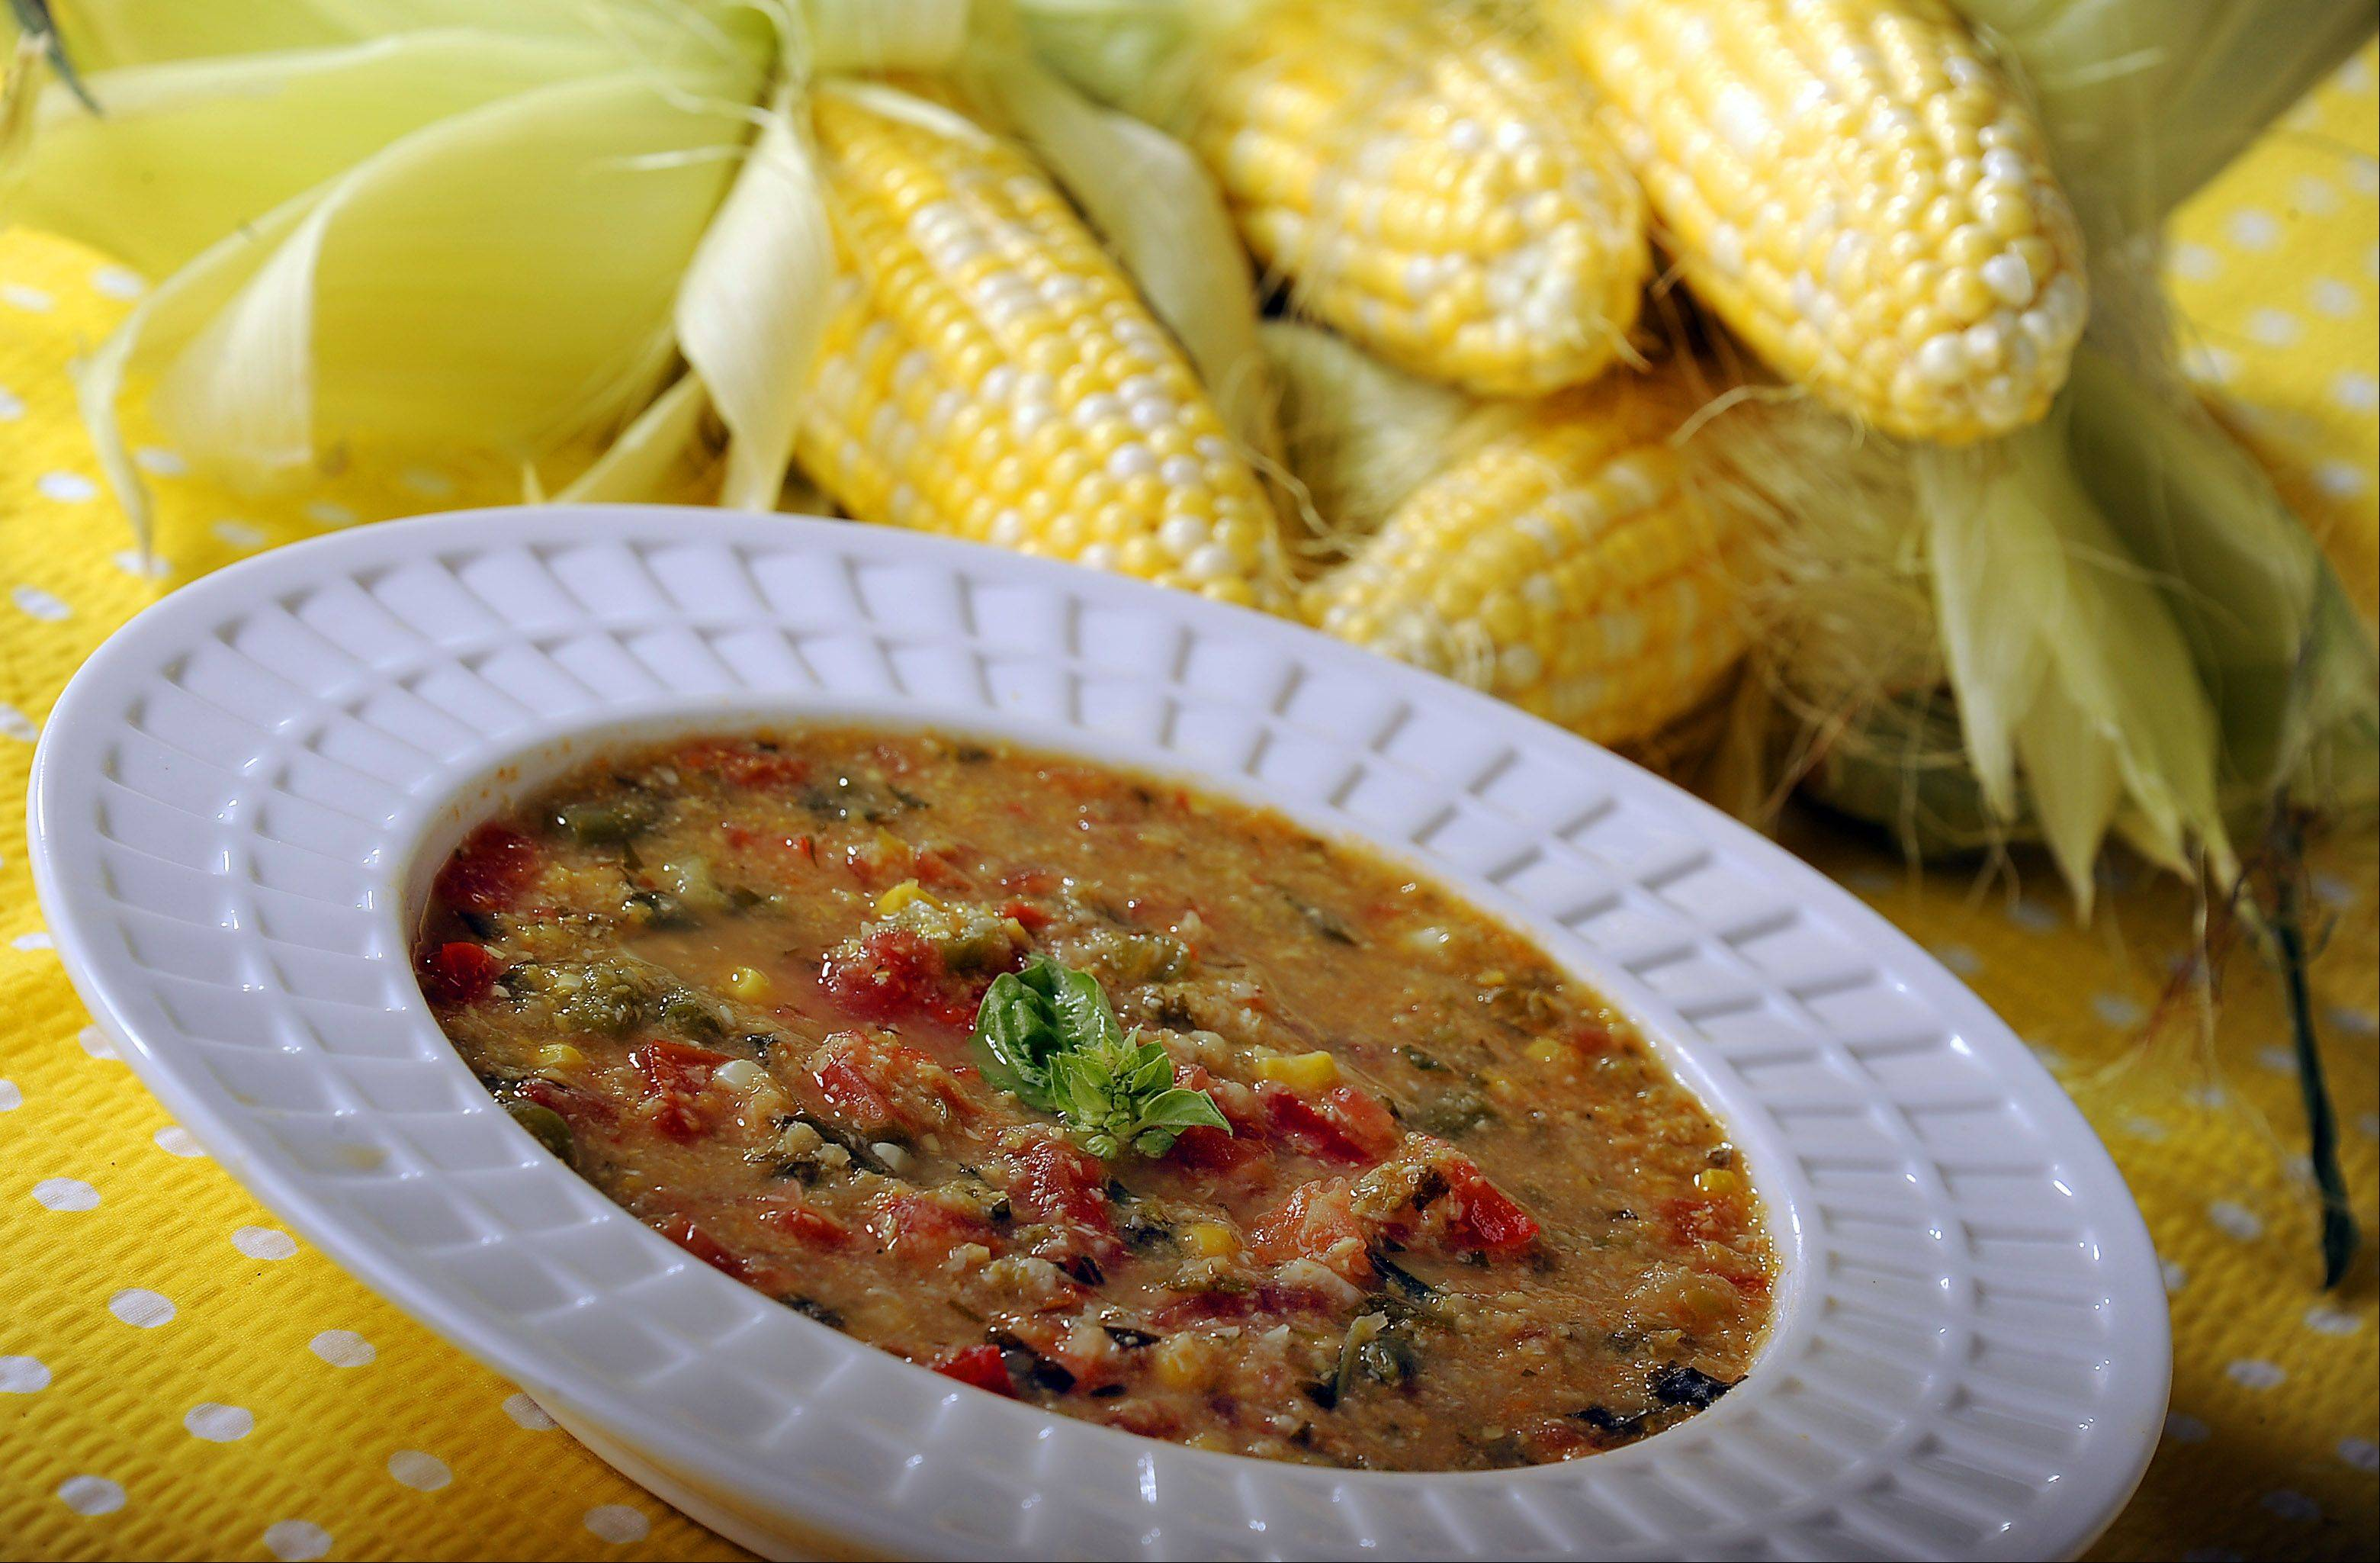 Soupalooza: Farmers market bounty turns into hearty soup